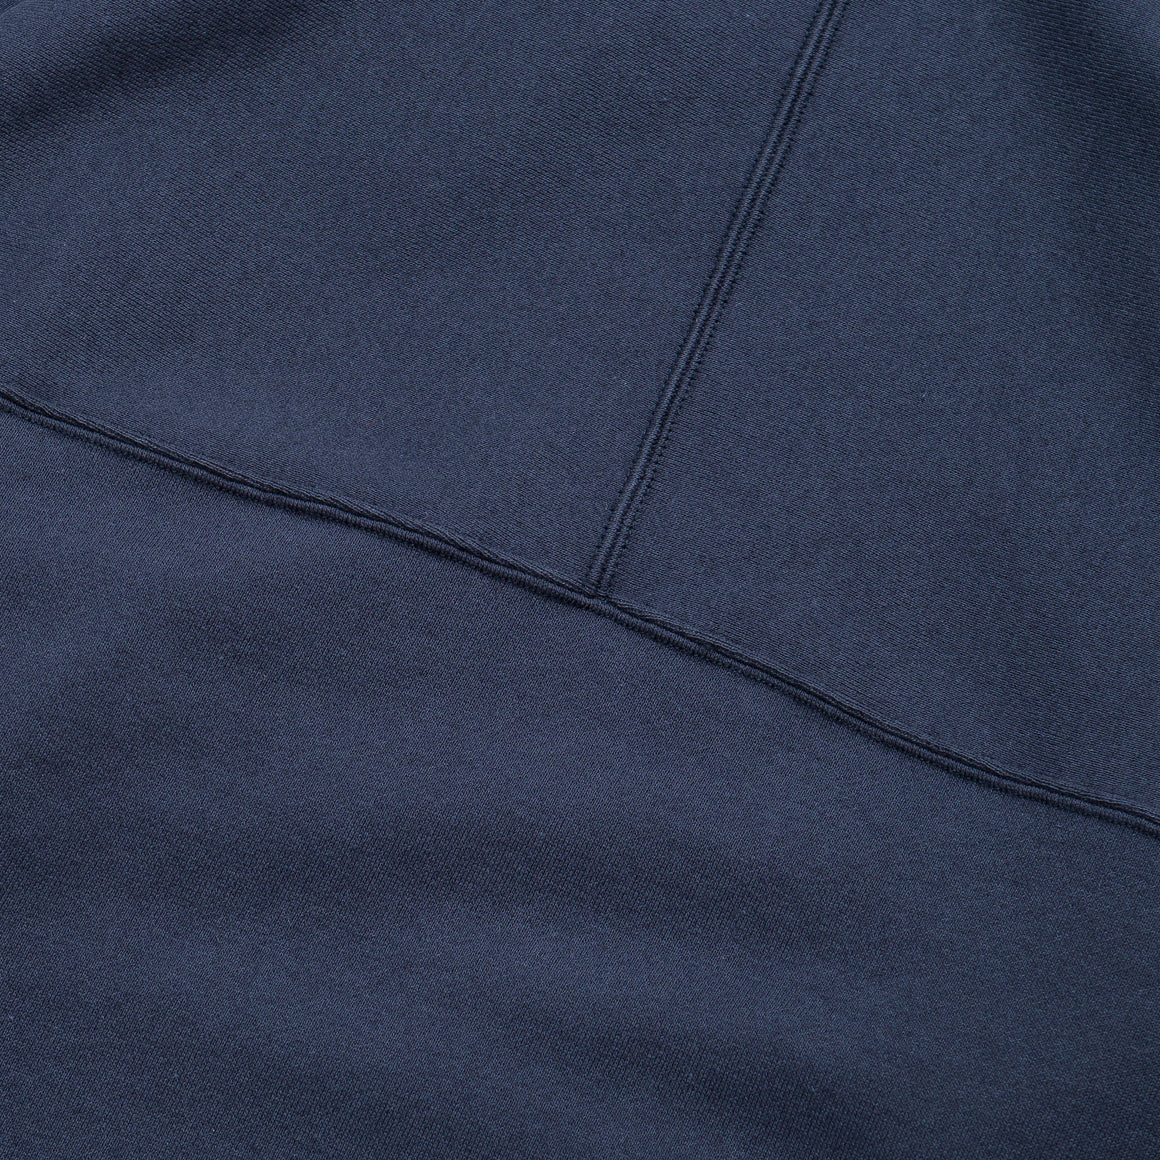 Nanamica - Hooded Pullover Sweat - Navy - Up There